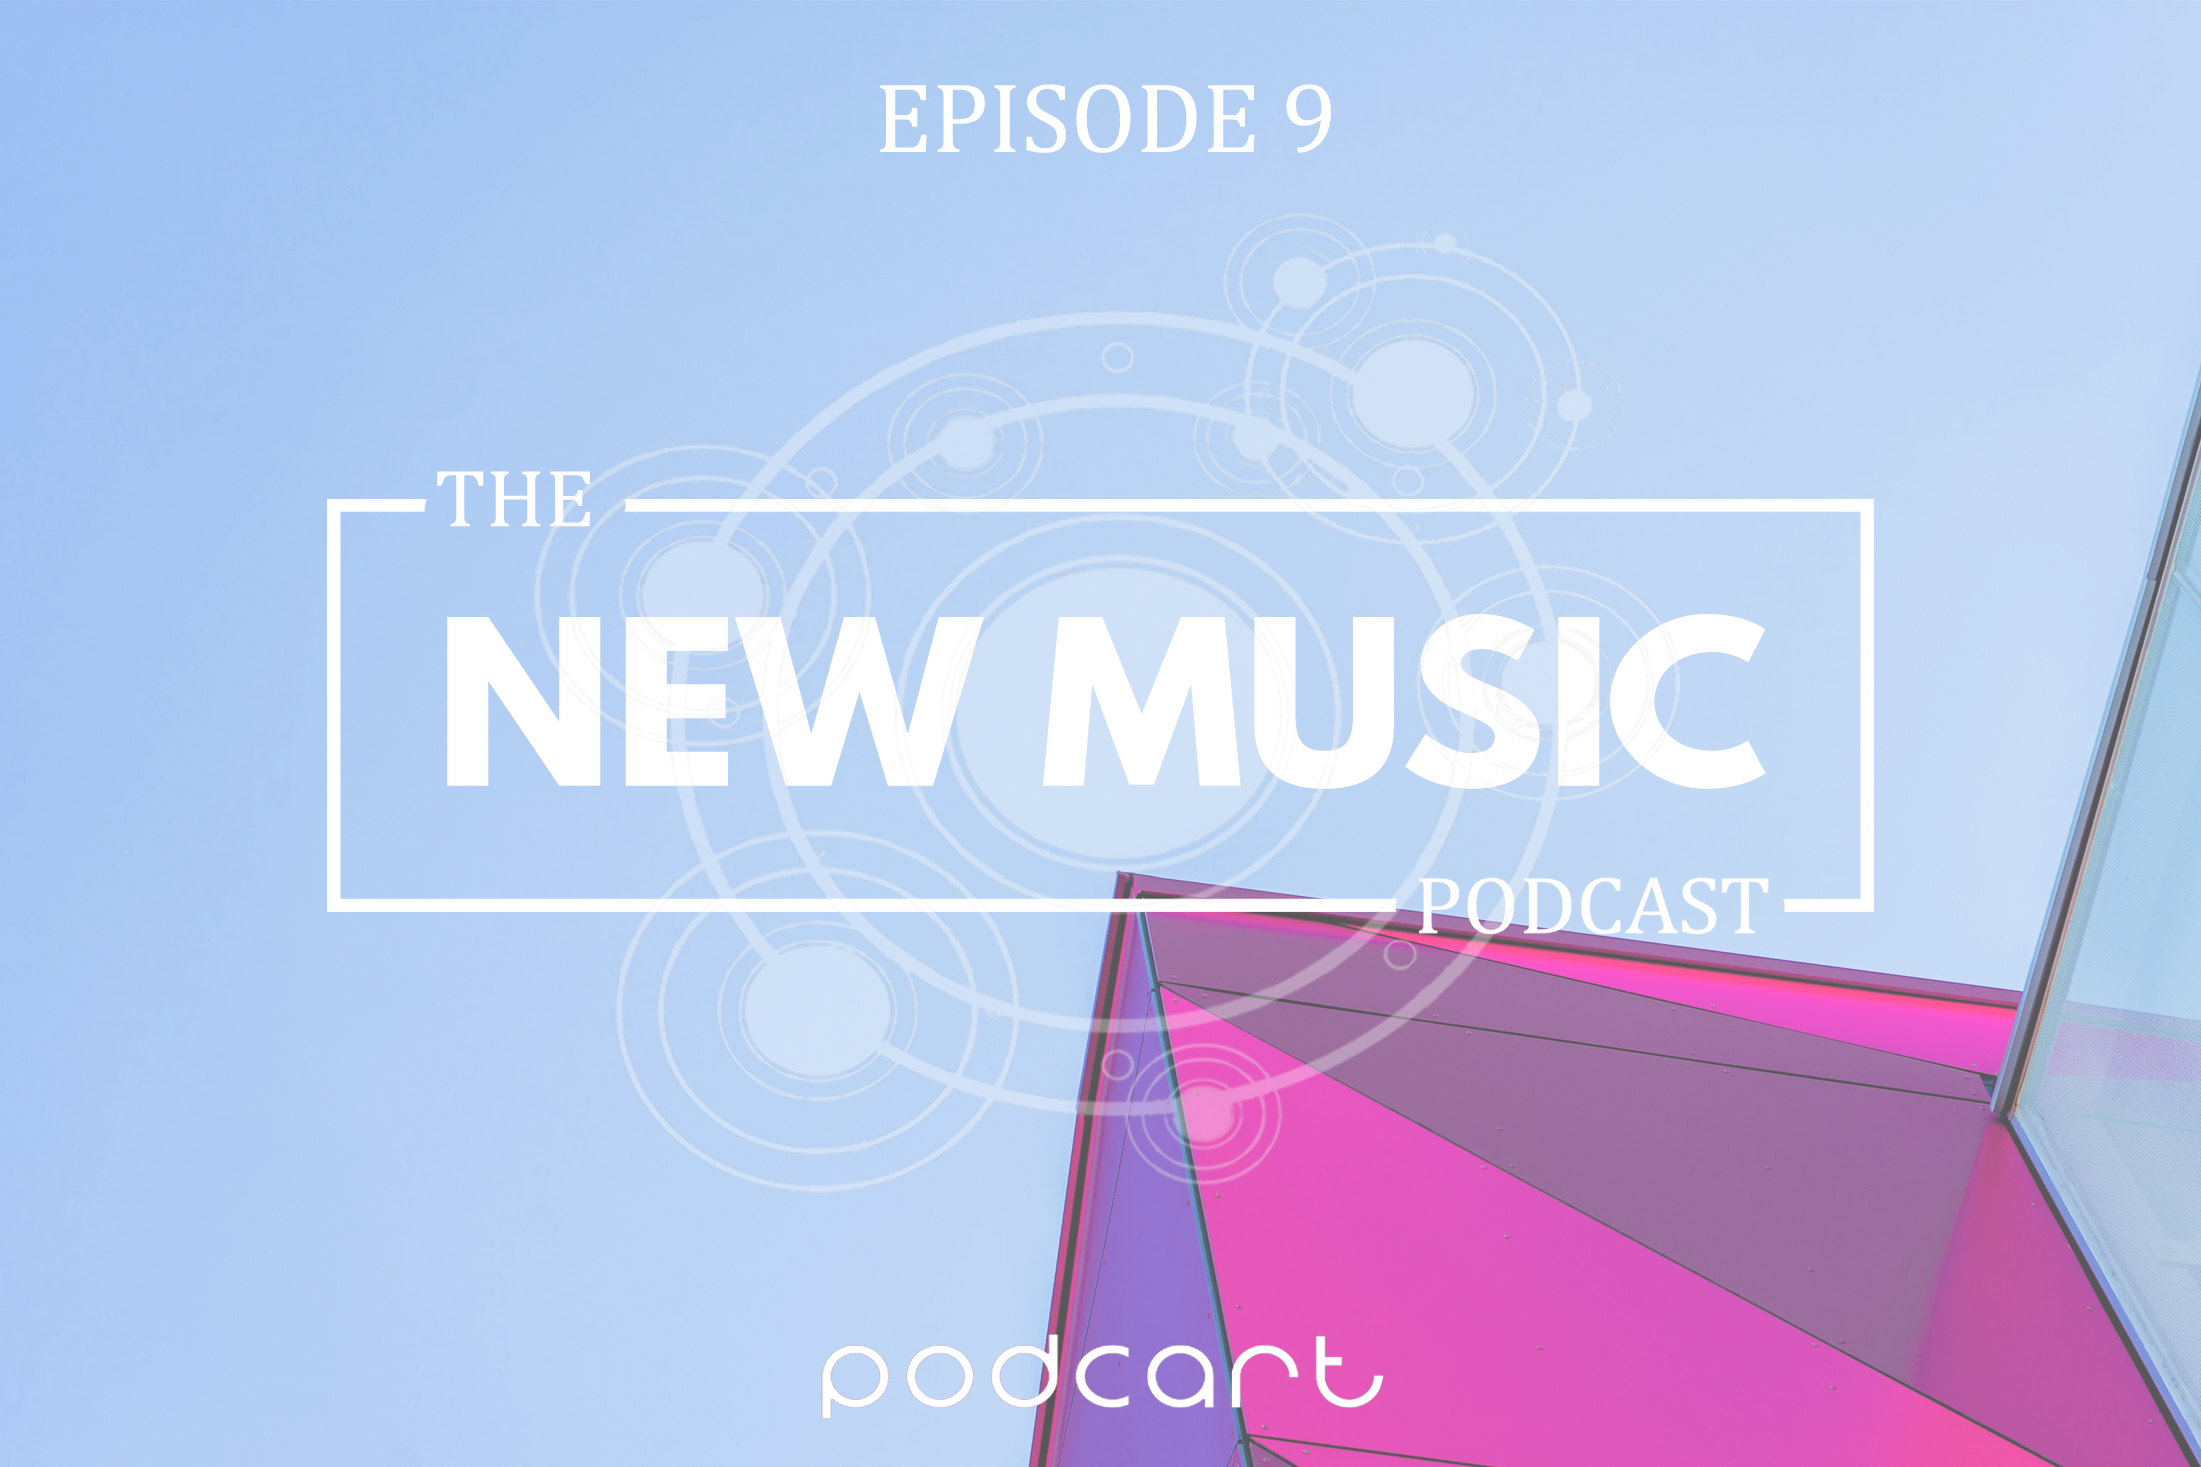 The New Music Podcast: Episode 9